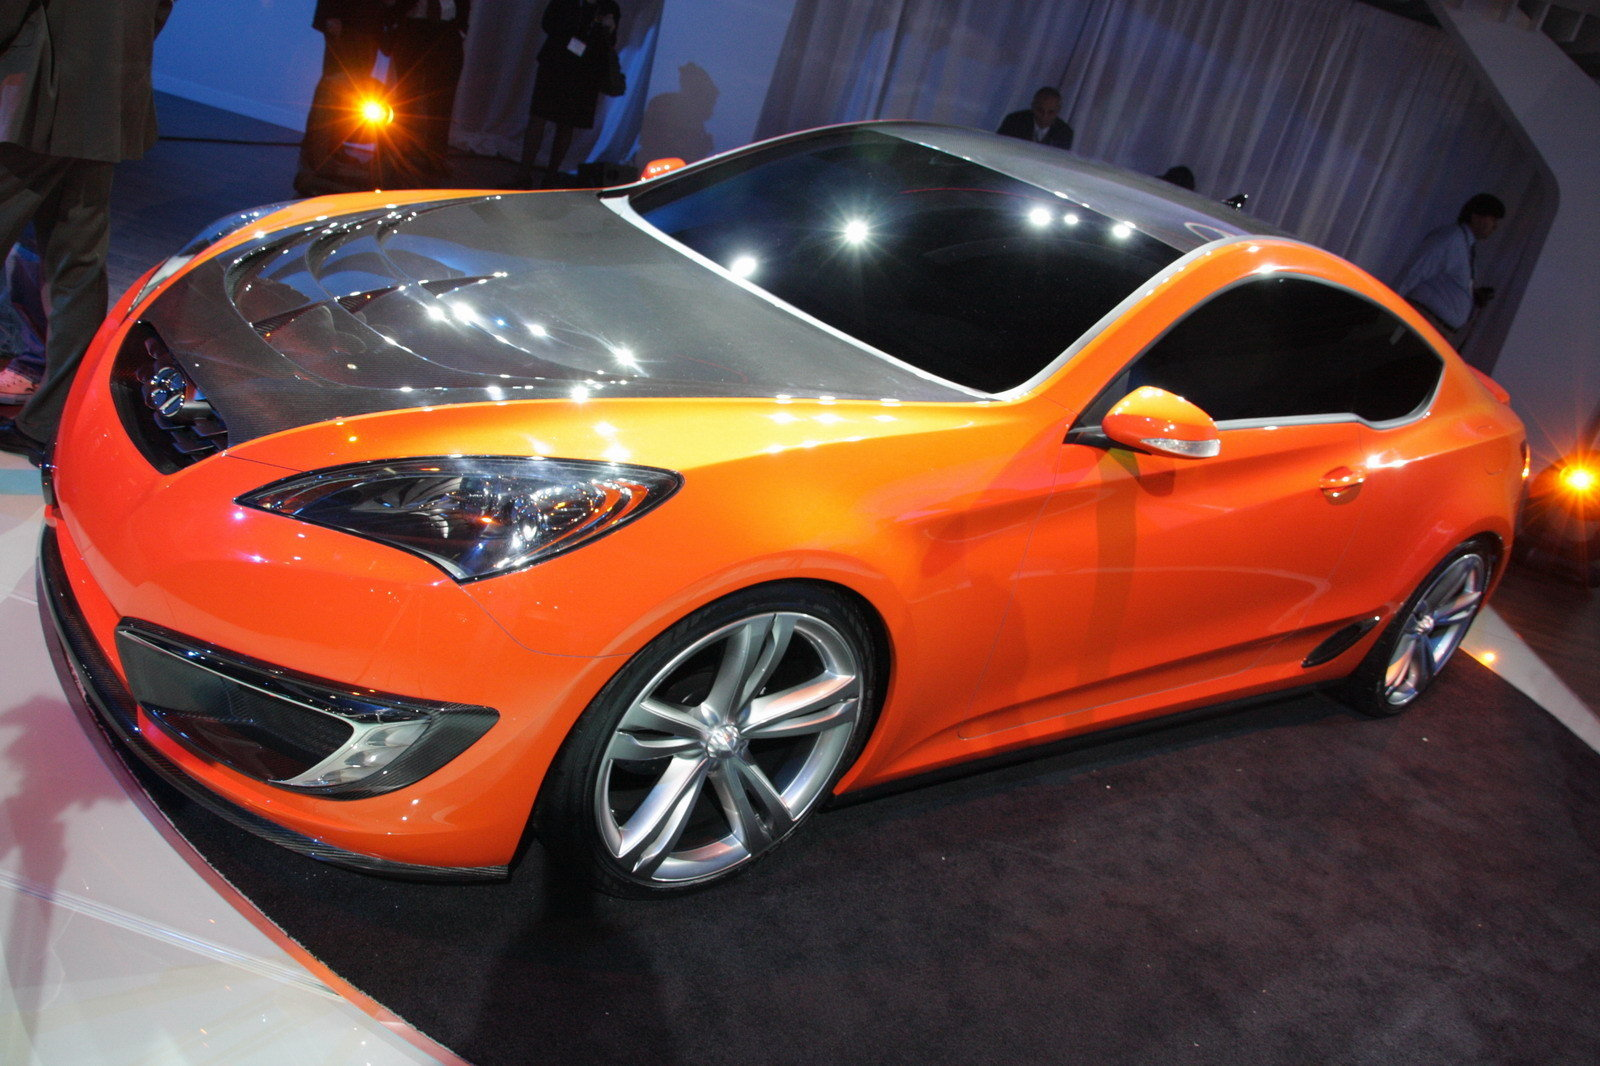 2009 hyundai genesis coupe picture 214967 car review top speed. Black Bedroom Furniture Sets. Home Design Ideas